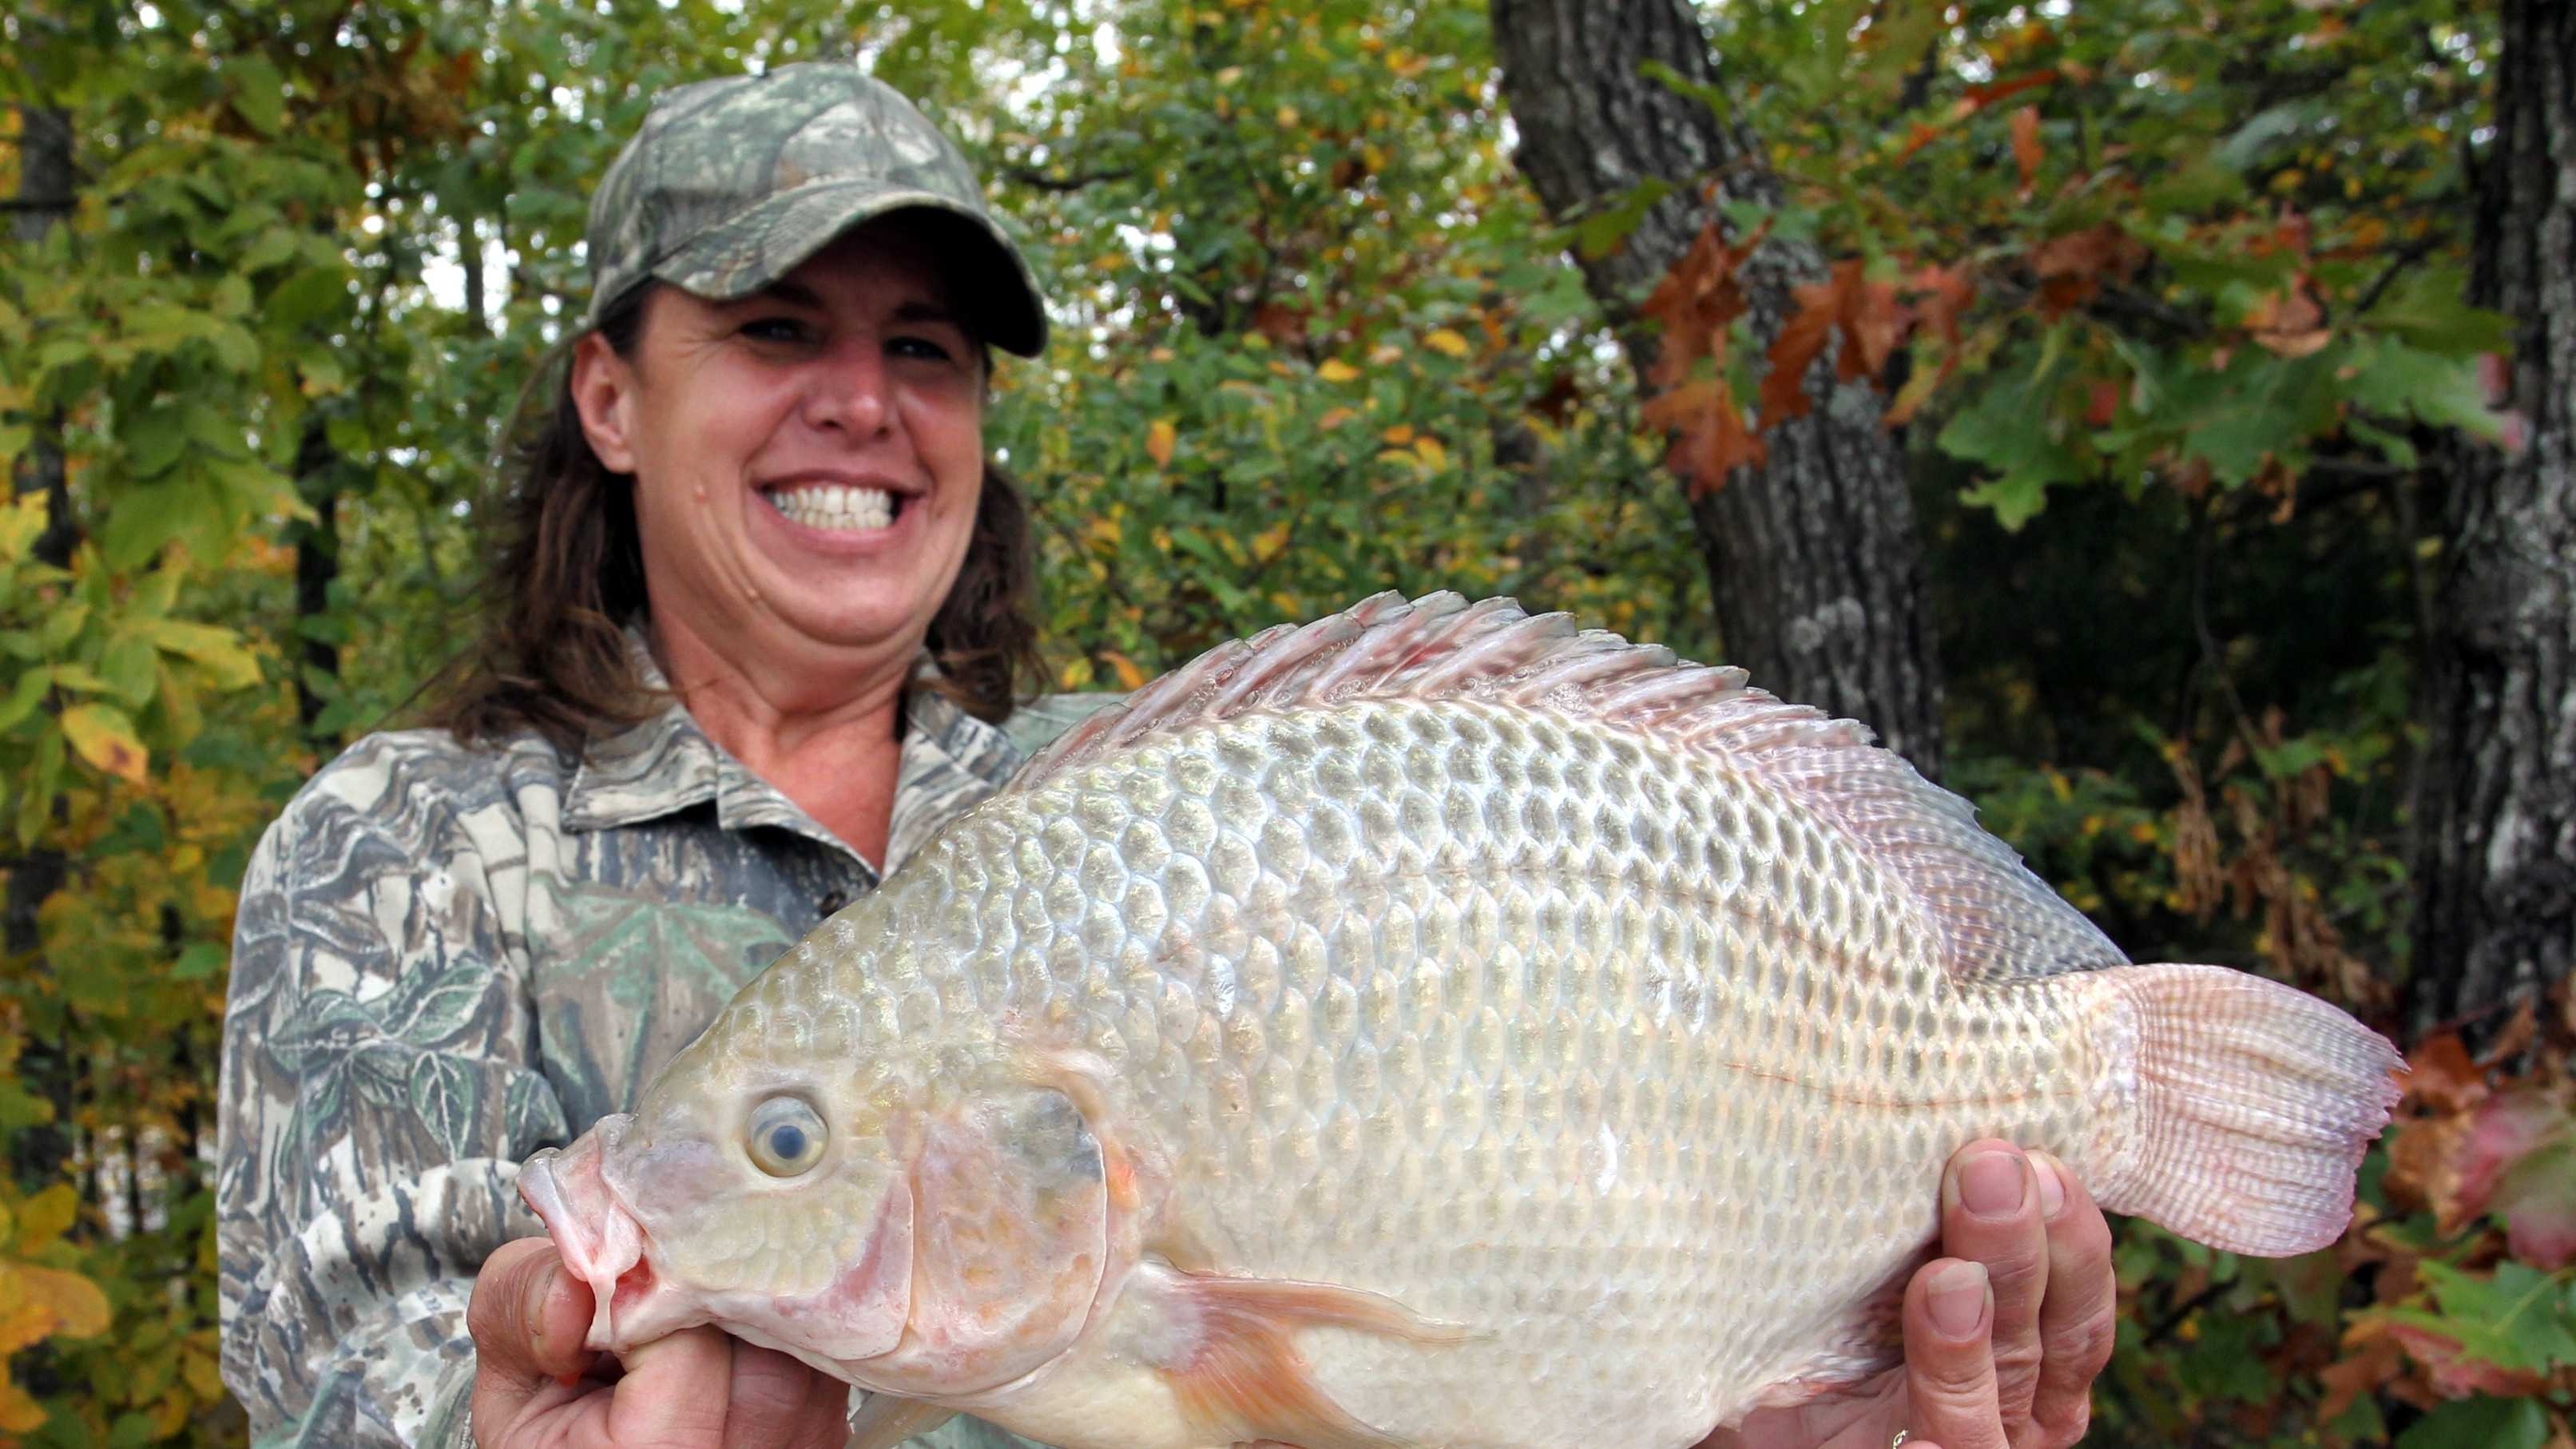 The record Tilapia weighed 3 pounds, 8 ounces. Sheila Easterly caught it at Camp Robinson in 2011.